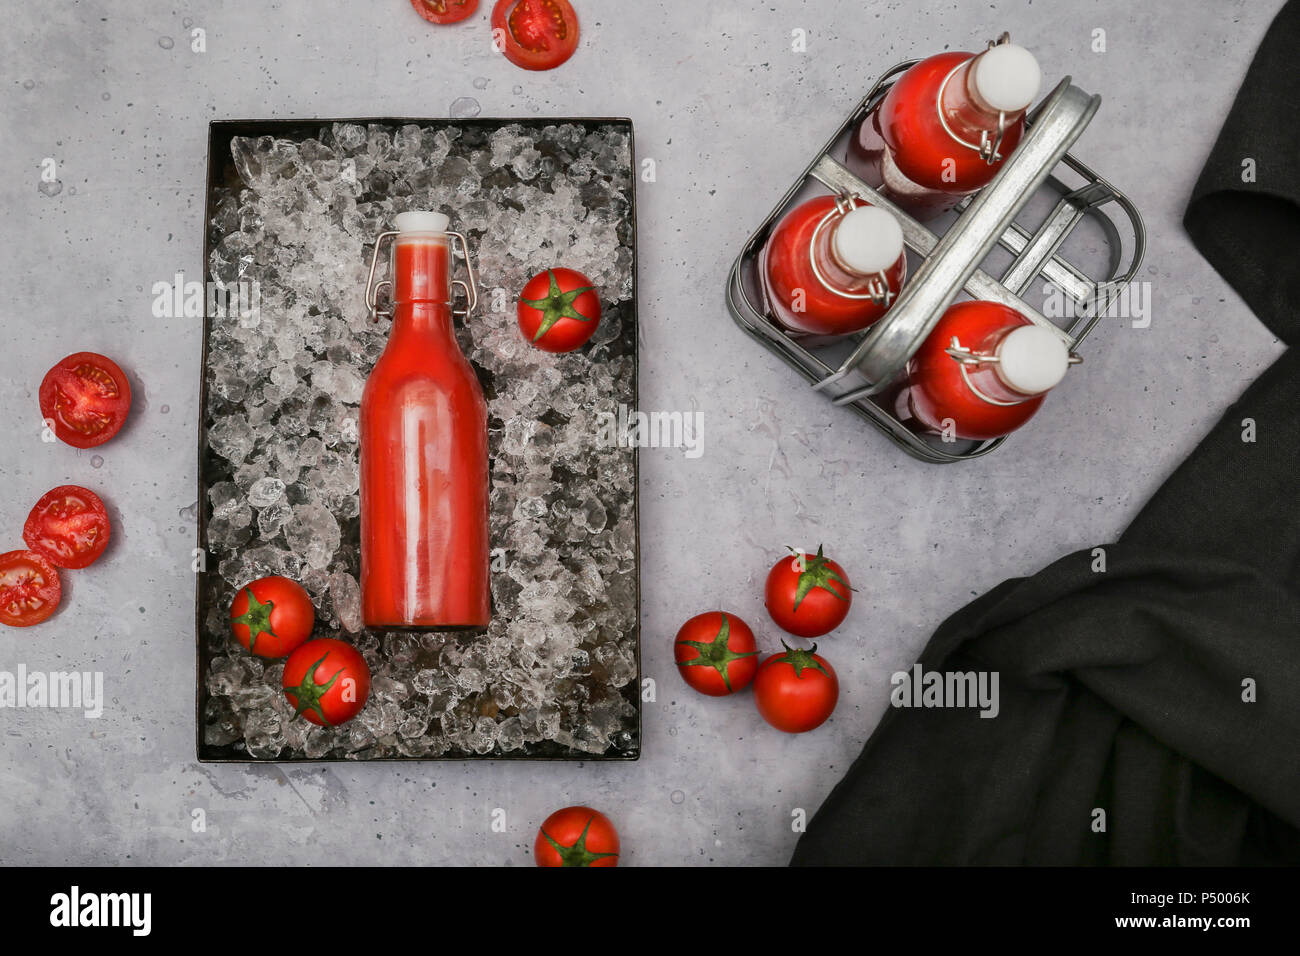 Ice-cooled homemade tomato juice in swing top bottle - Stock Image